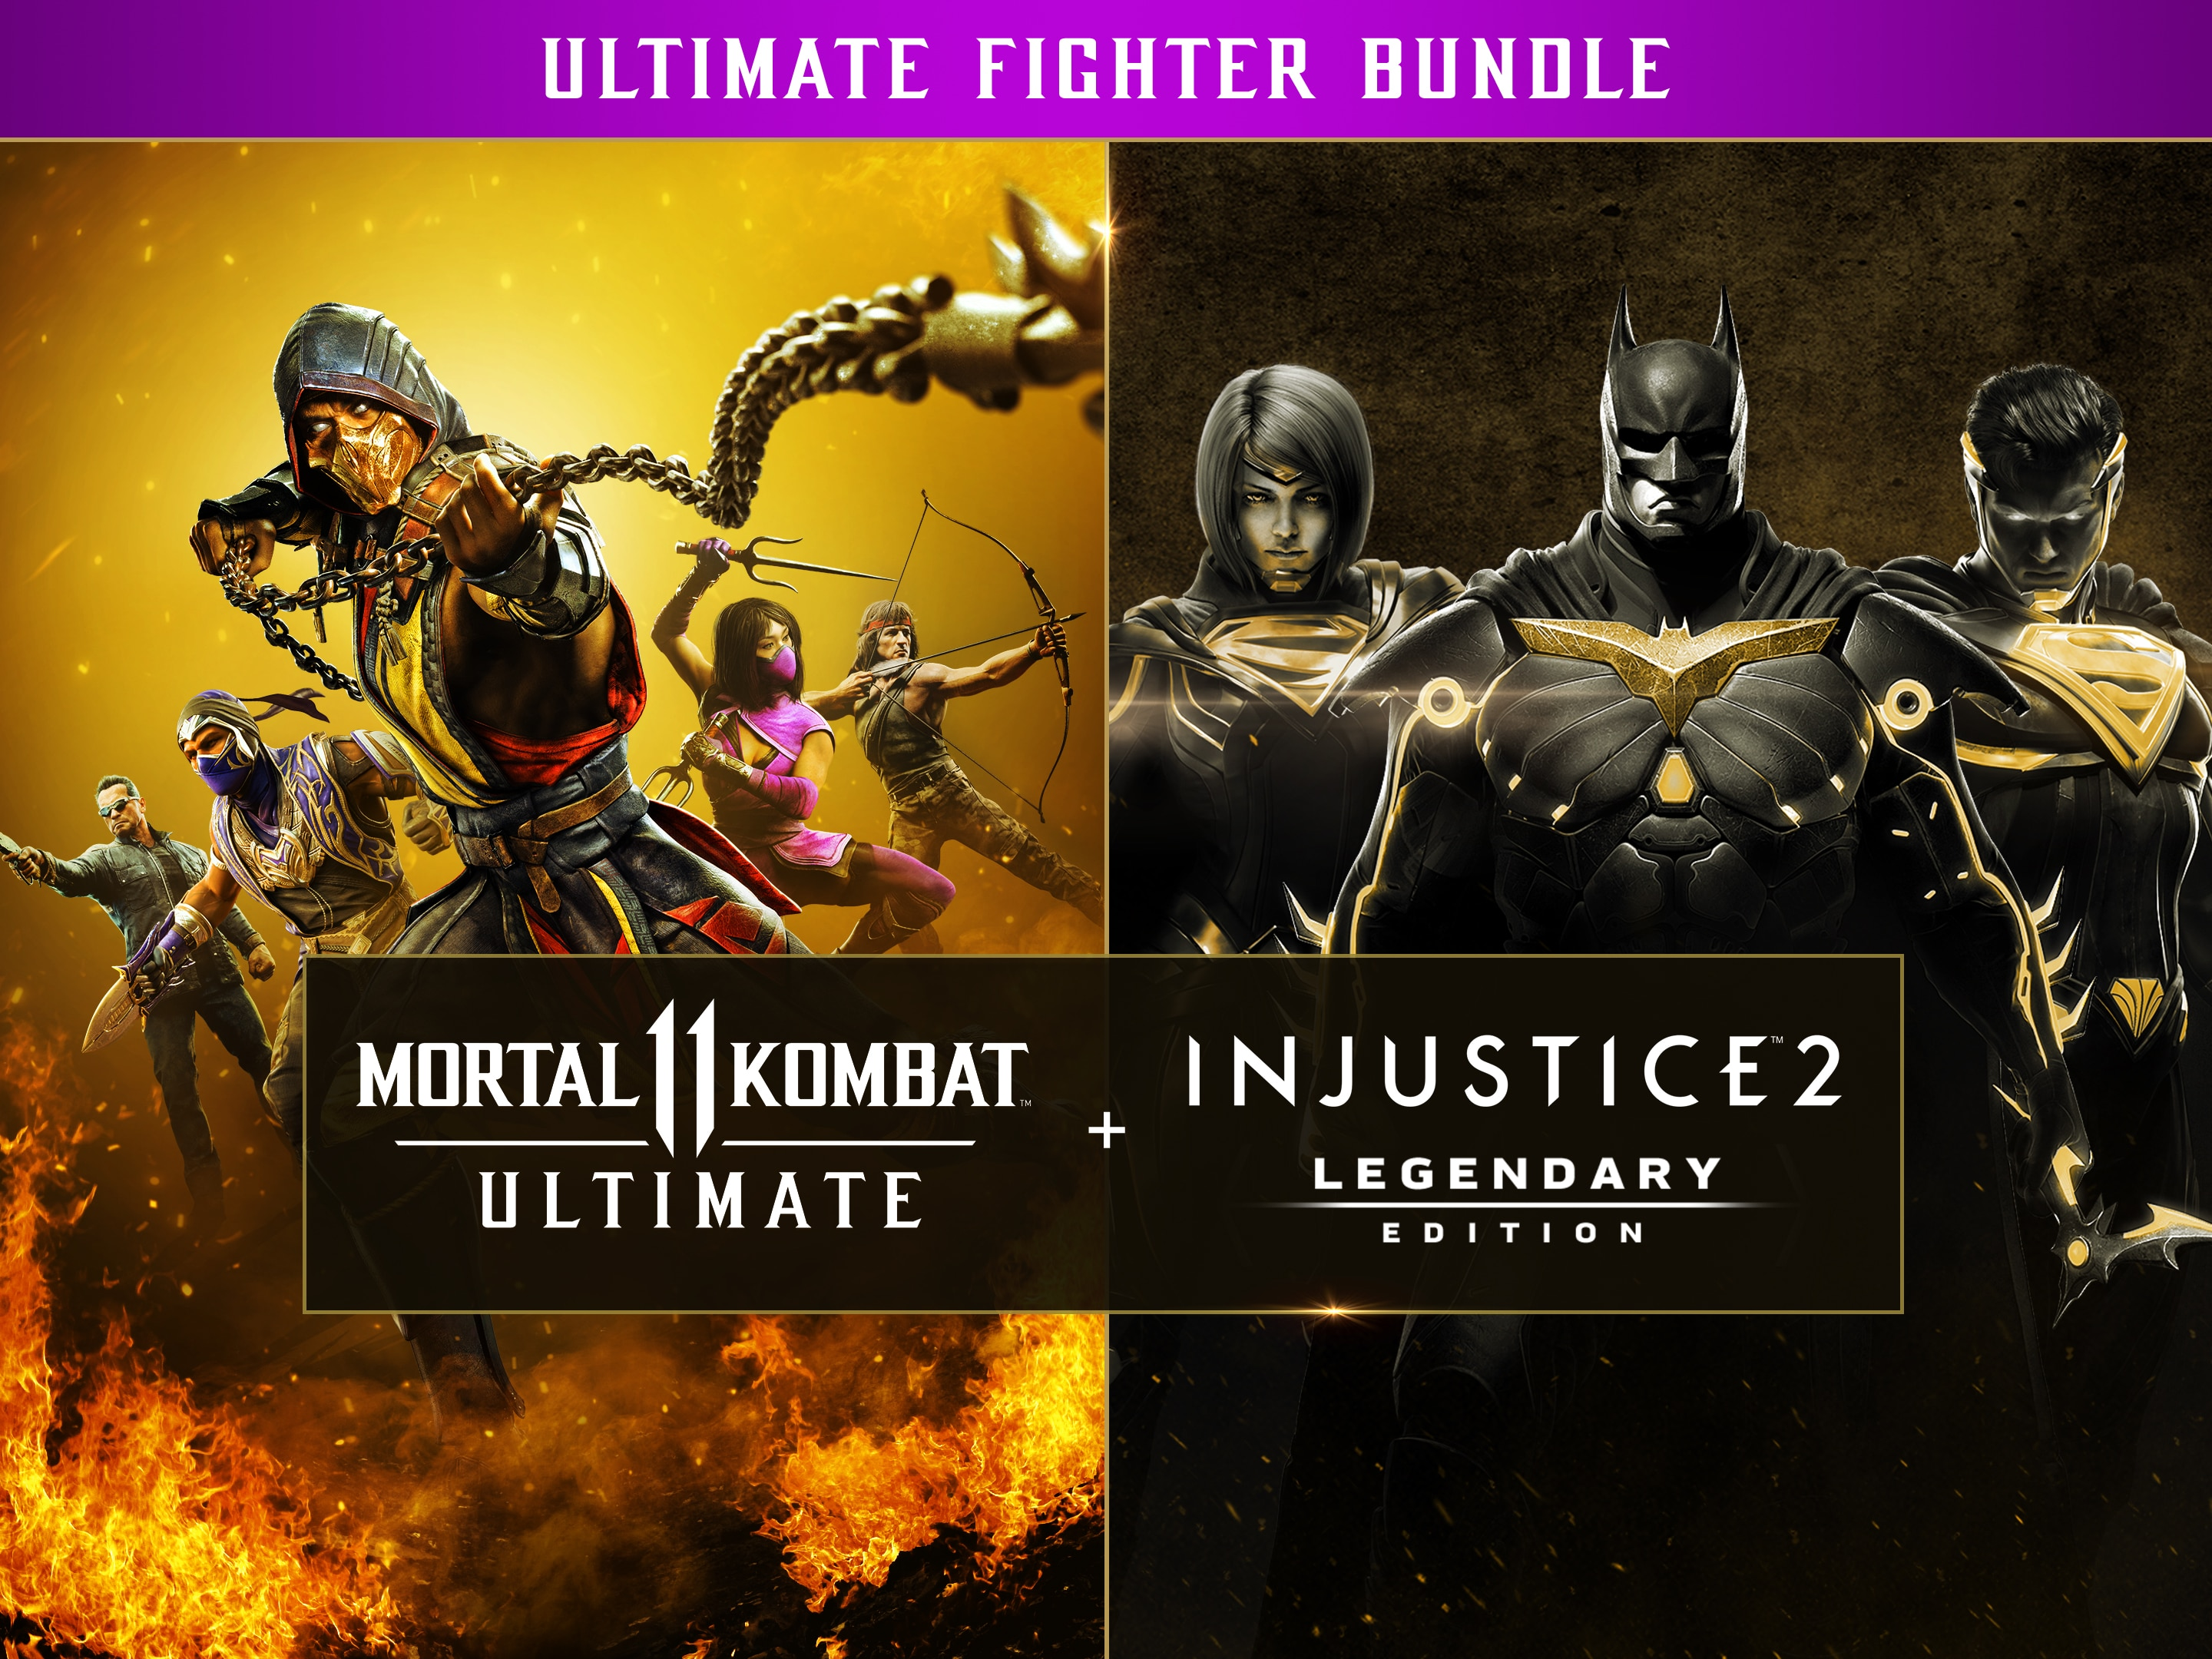 Mortal Kombat 11 Ultimate + Injustice 2 Leg. Edition Bundle